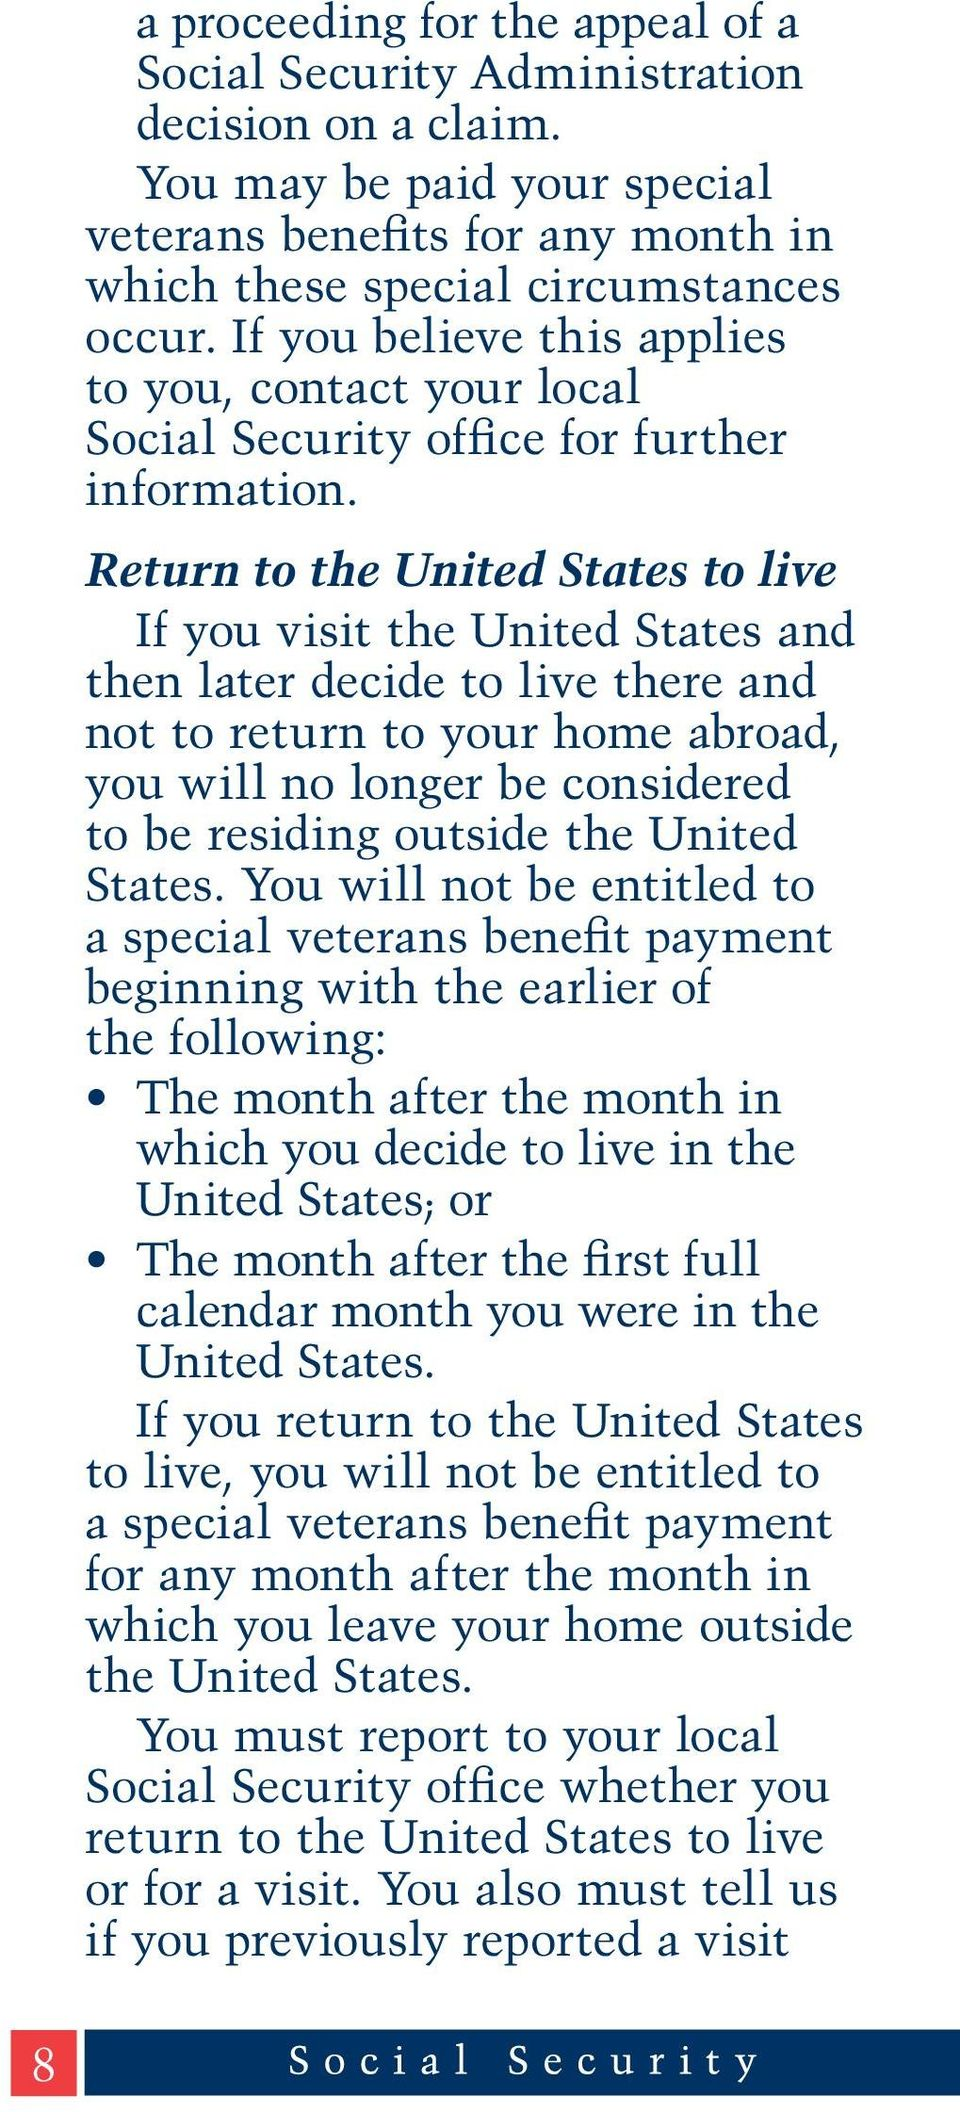 Return to the United States to live If you visit the United States and then later decide to live there and not to return to your home abroad, you will no longer be considered to be residing outside